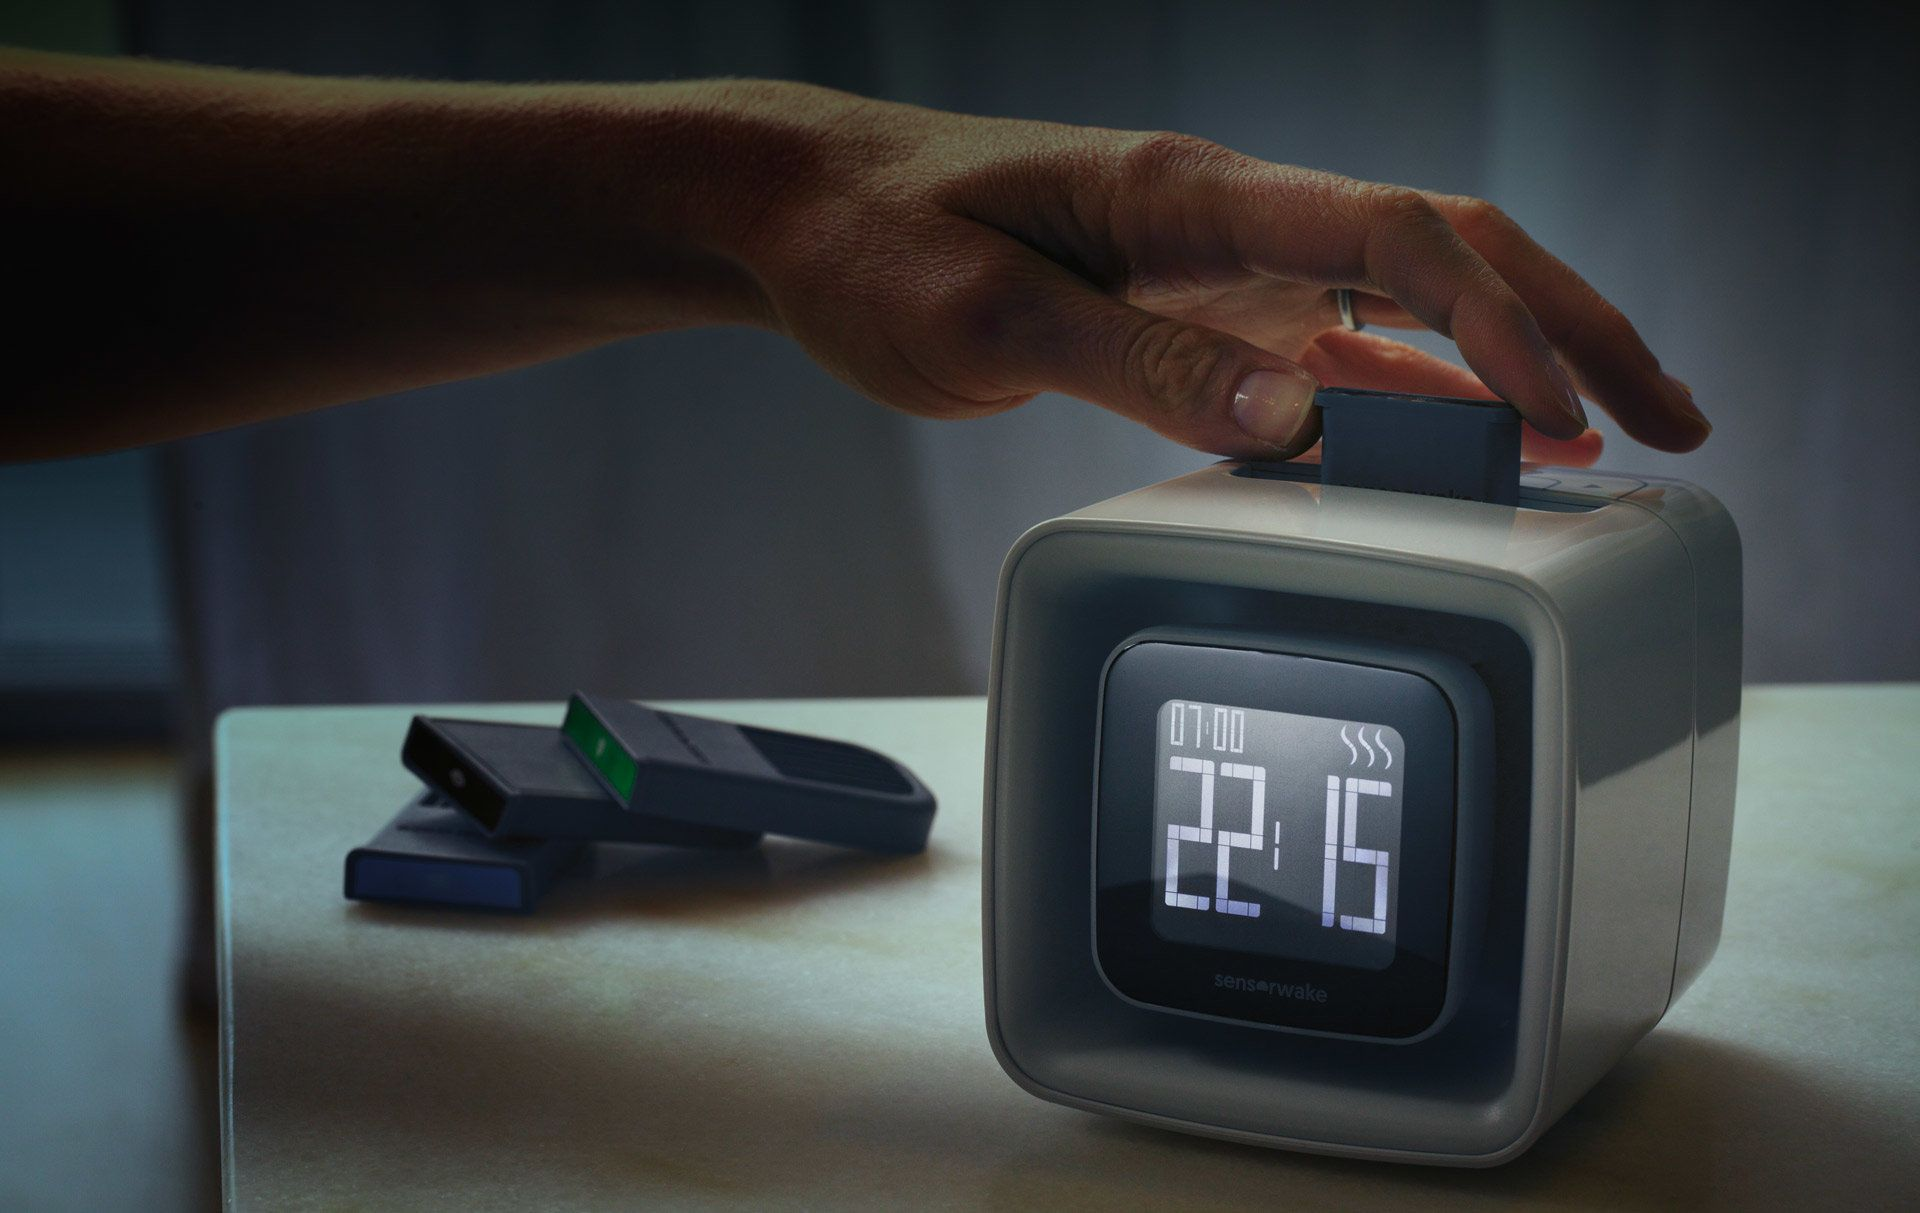 The SensorWakealarm clock wakes you with the scent of your choice― butter croissants, espresso or seaside (&ldquo